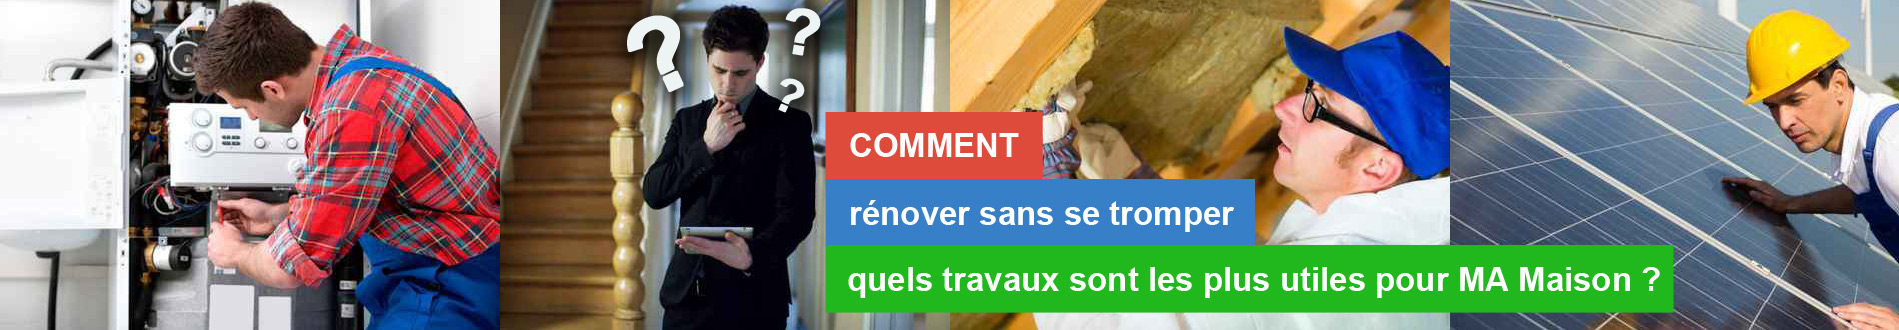 slider-2-aides-travaux-renovation